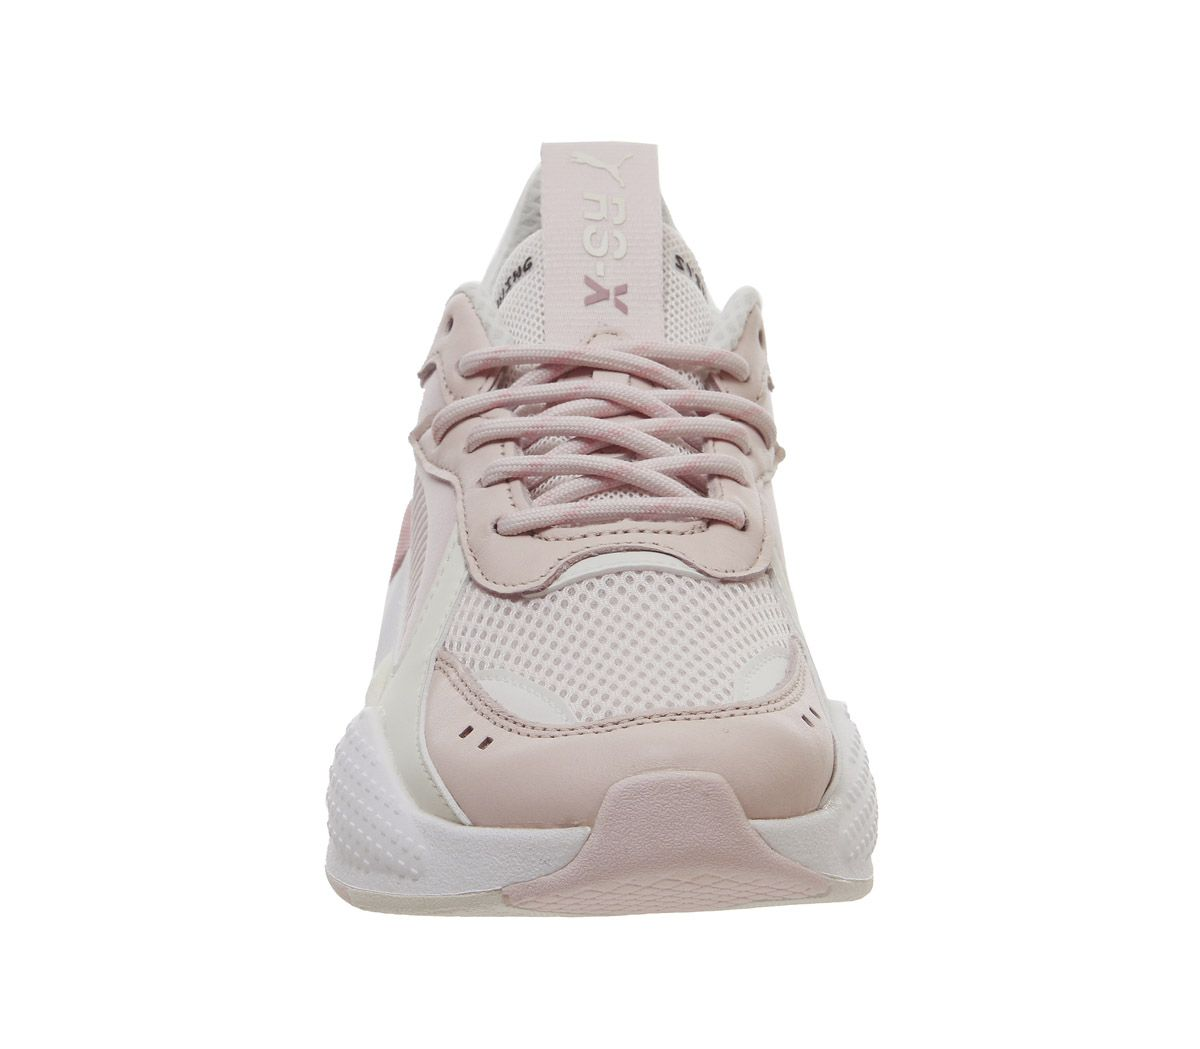 1af784a8fc5 Puma Rs-x Tracks Trainers Pink Pink Peach White - Hers trainers